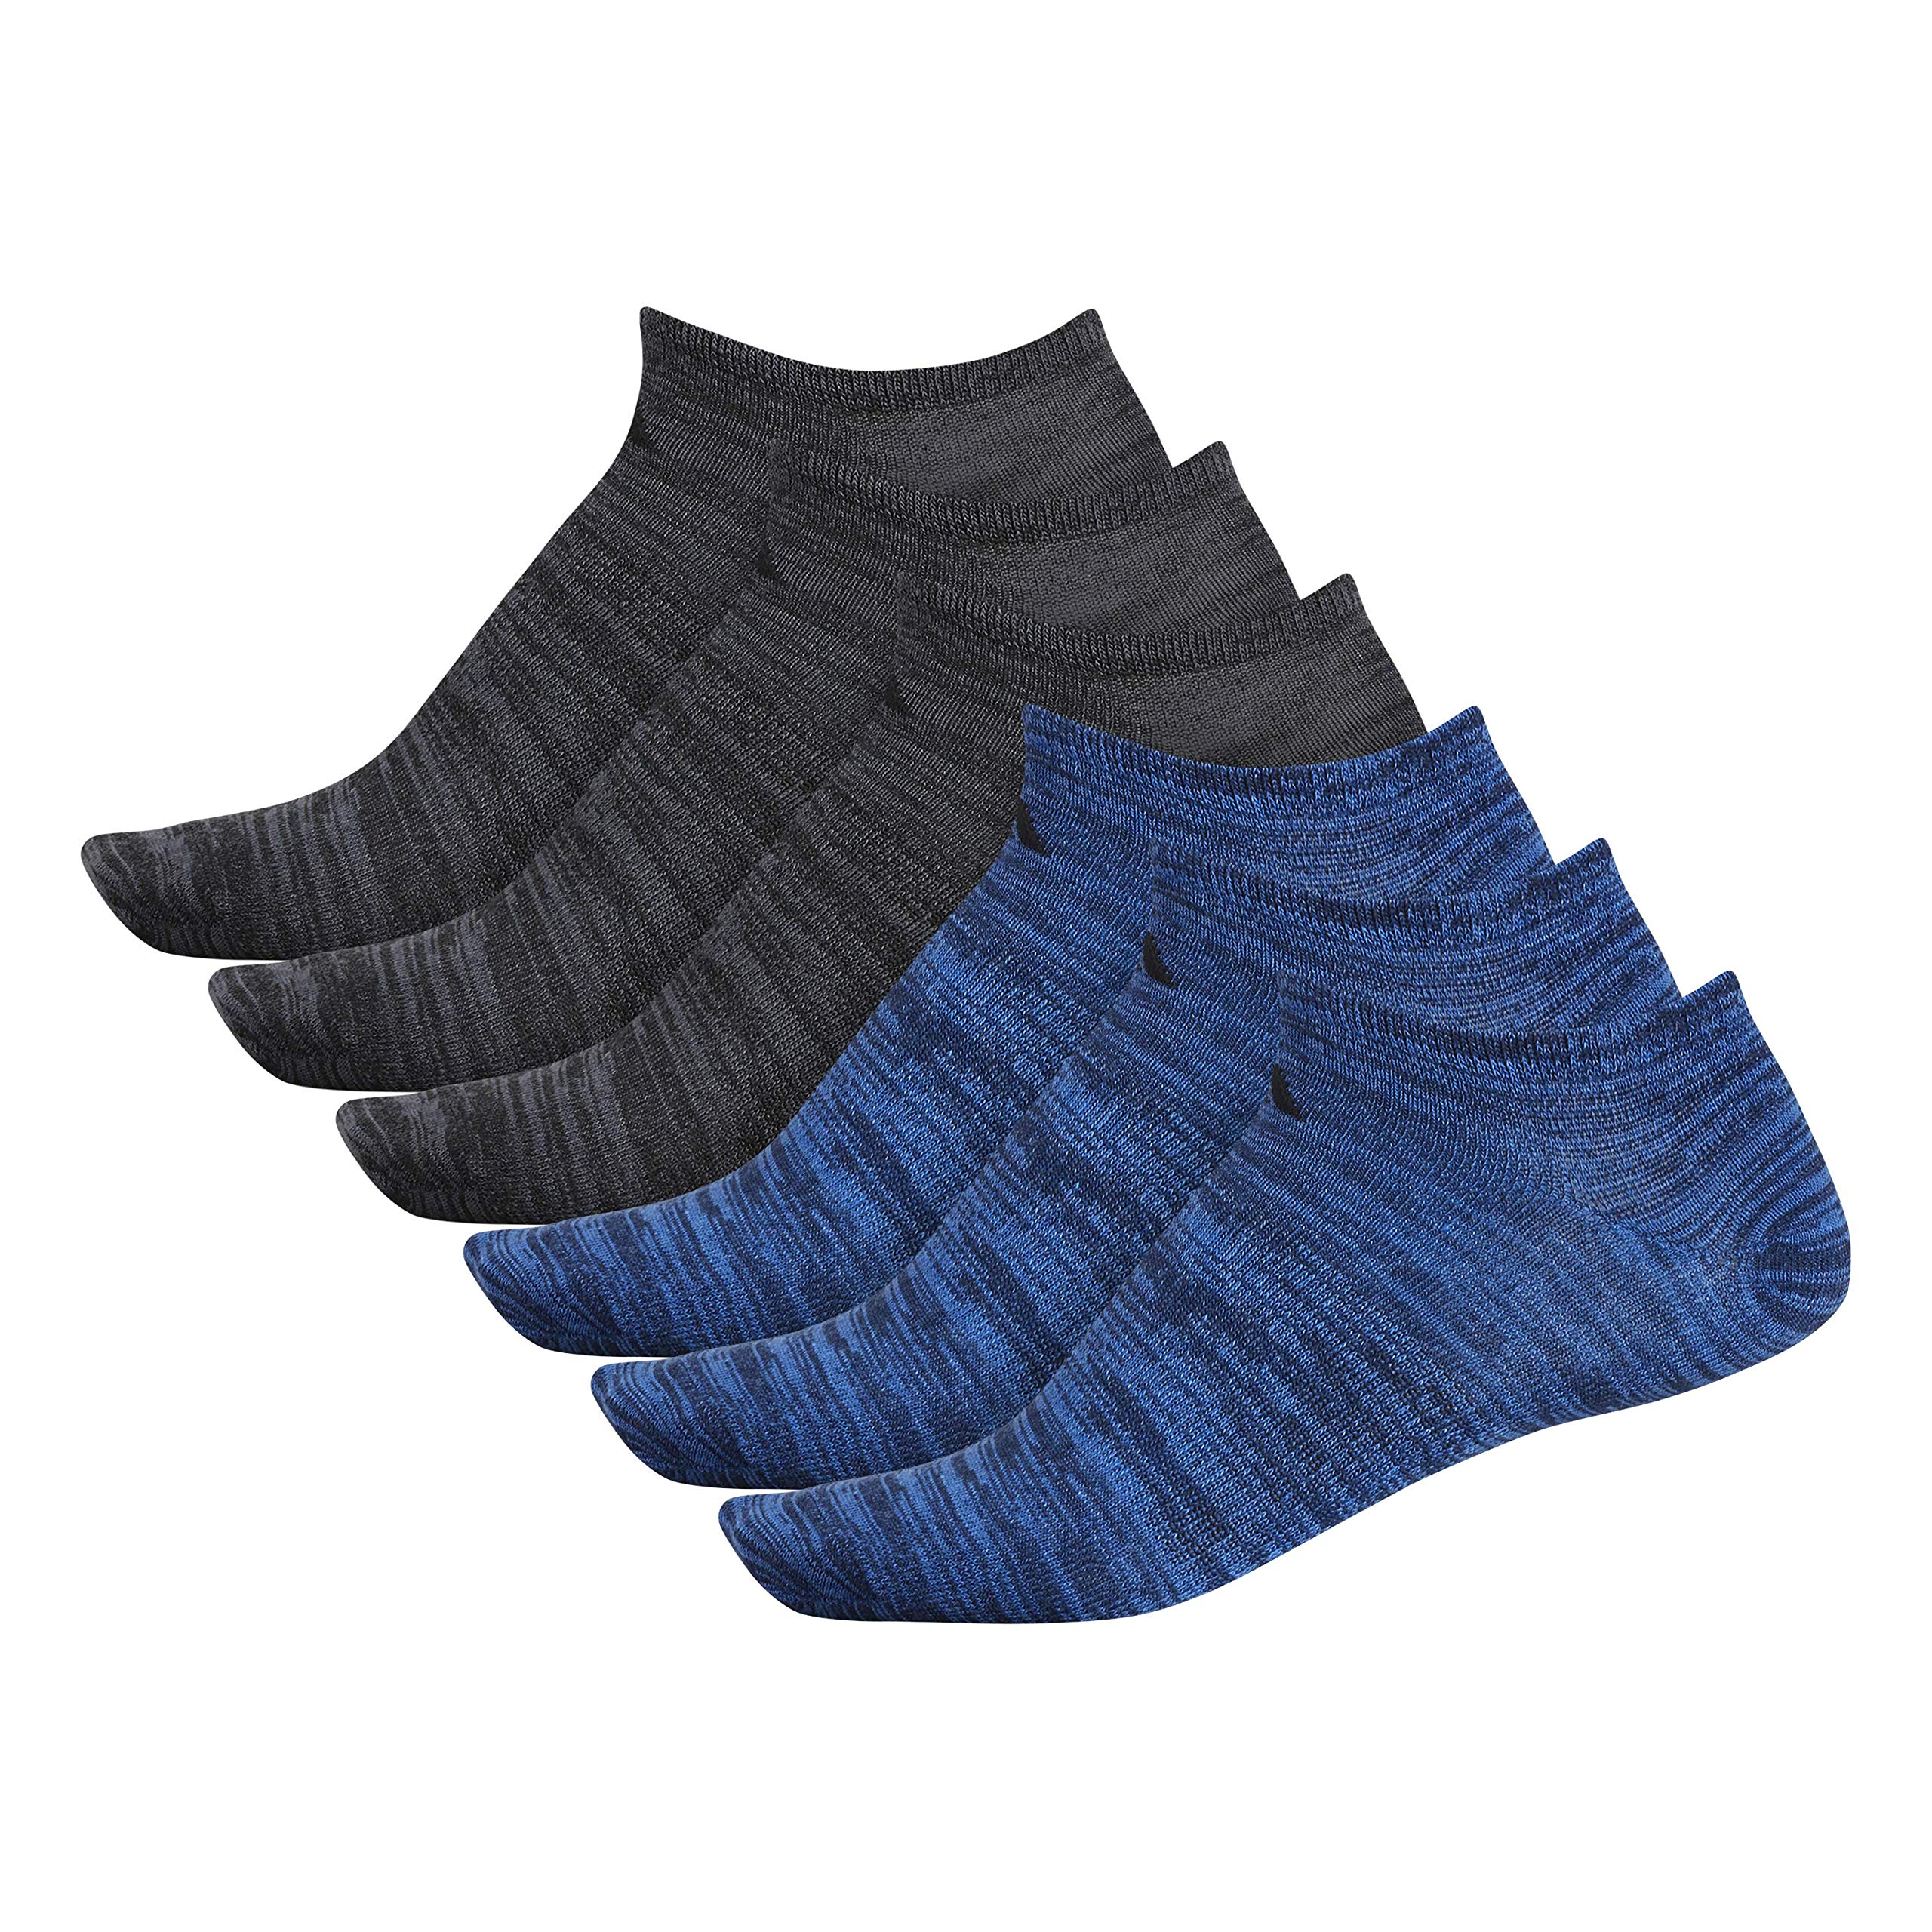 adidas Men's Superlite Low Cut Socks with arch compression (6-Pair),Collegiate Navy - True Blue Space Dye/ Black Black - On,Large, (Shoe Size 6-12) by adidas